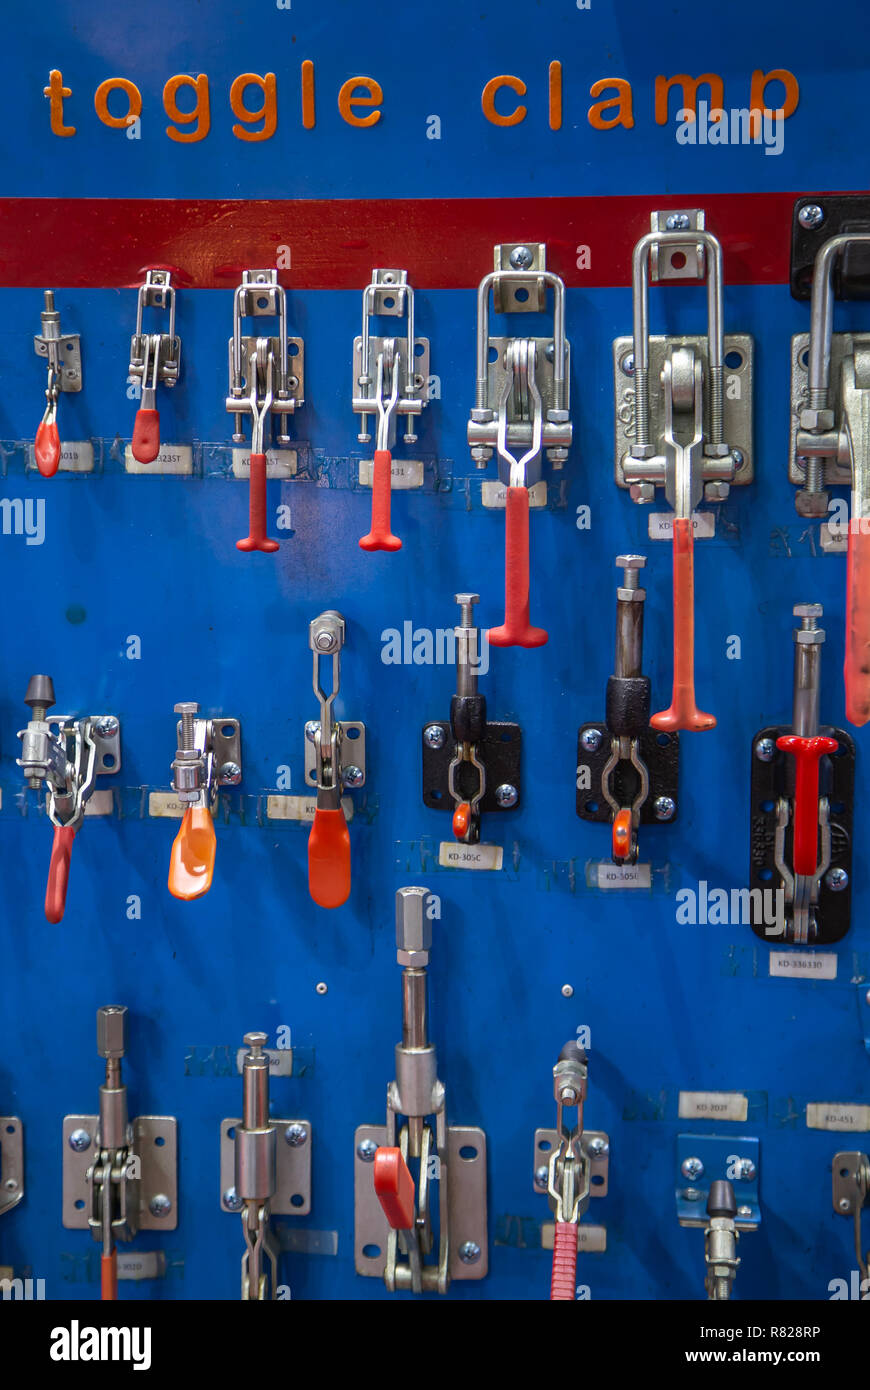 Bangkok, Thailand - November 21, 2018: Push / Pull quick release toggle clamp for industrial machining - Stock Image